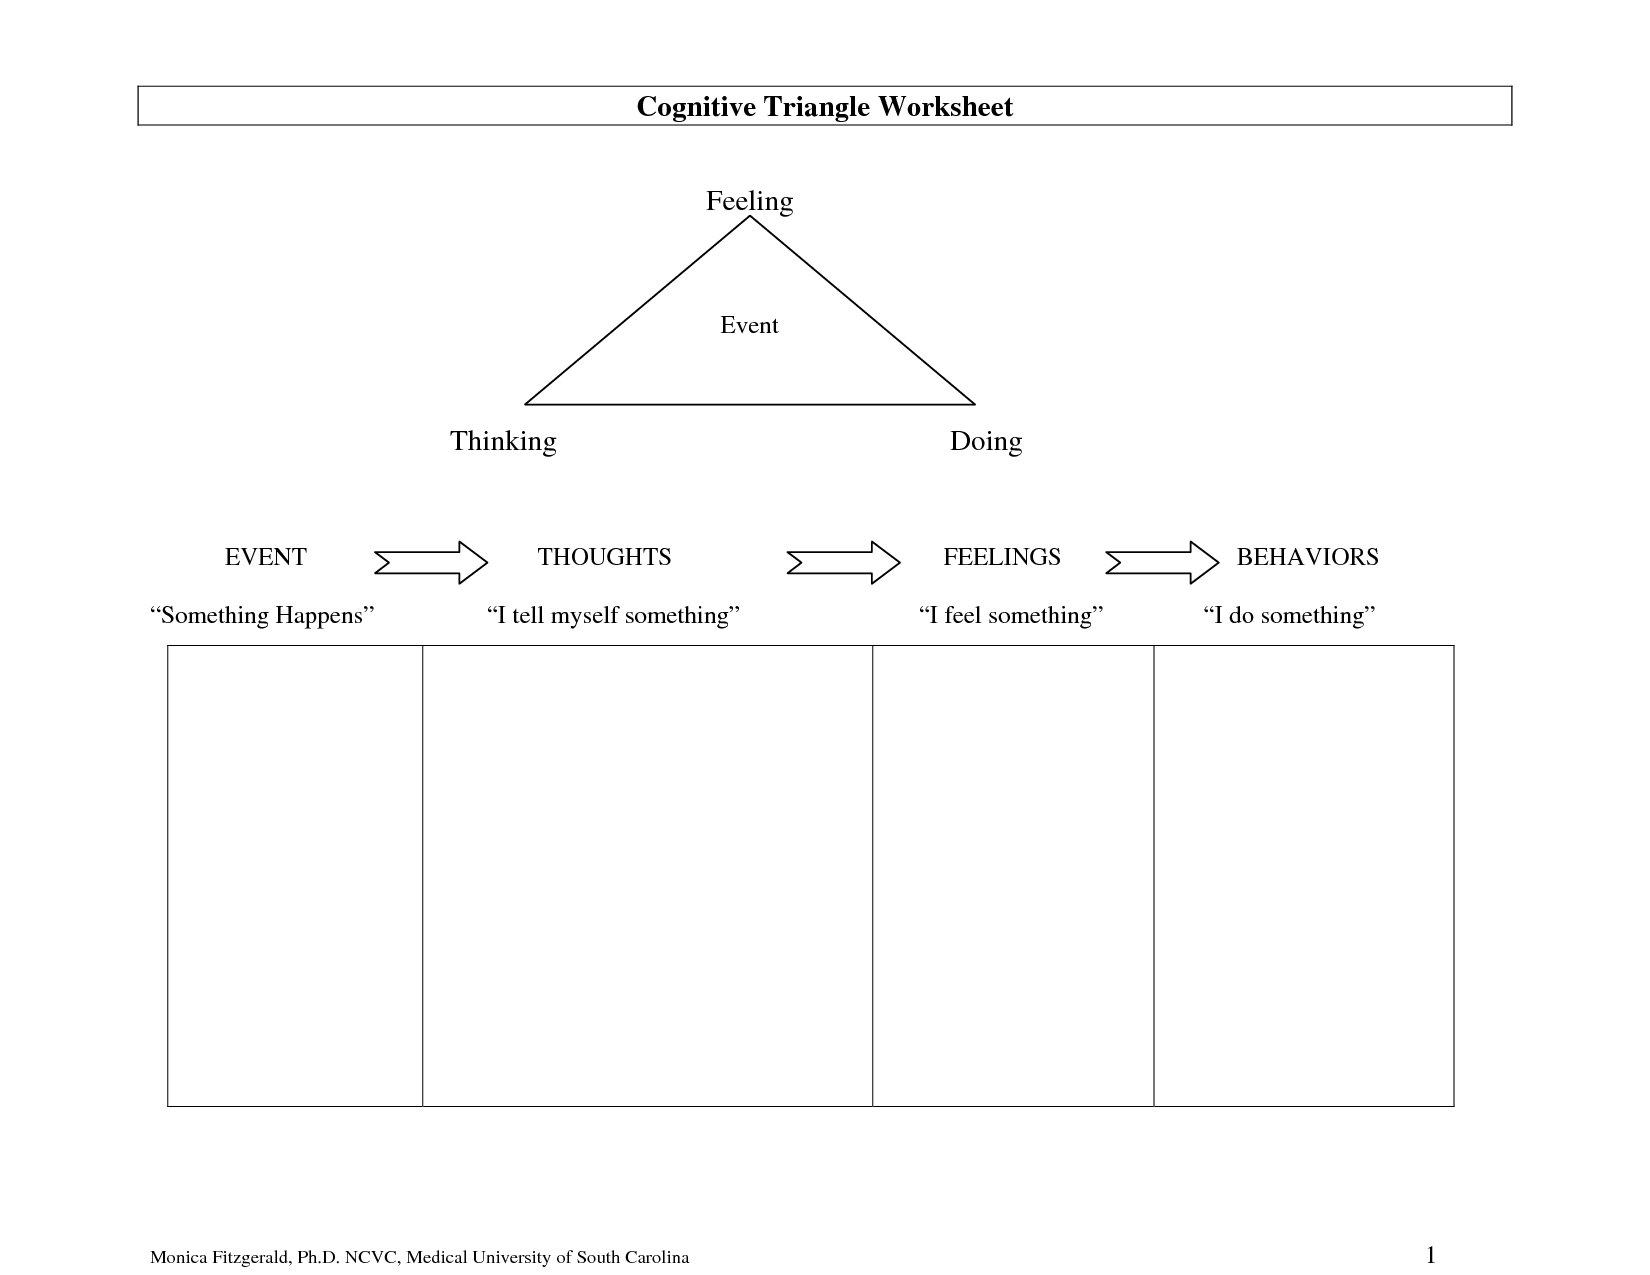 Worksheets Health Triangle Worksheet full size printable feelings worksheets cognitive triangle worksheet feeling thinking doing